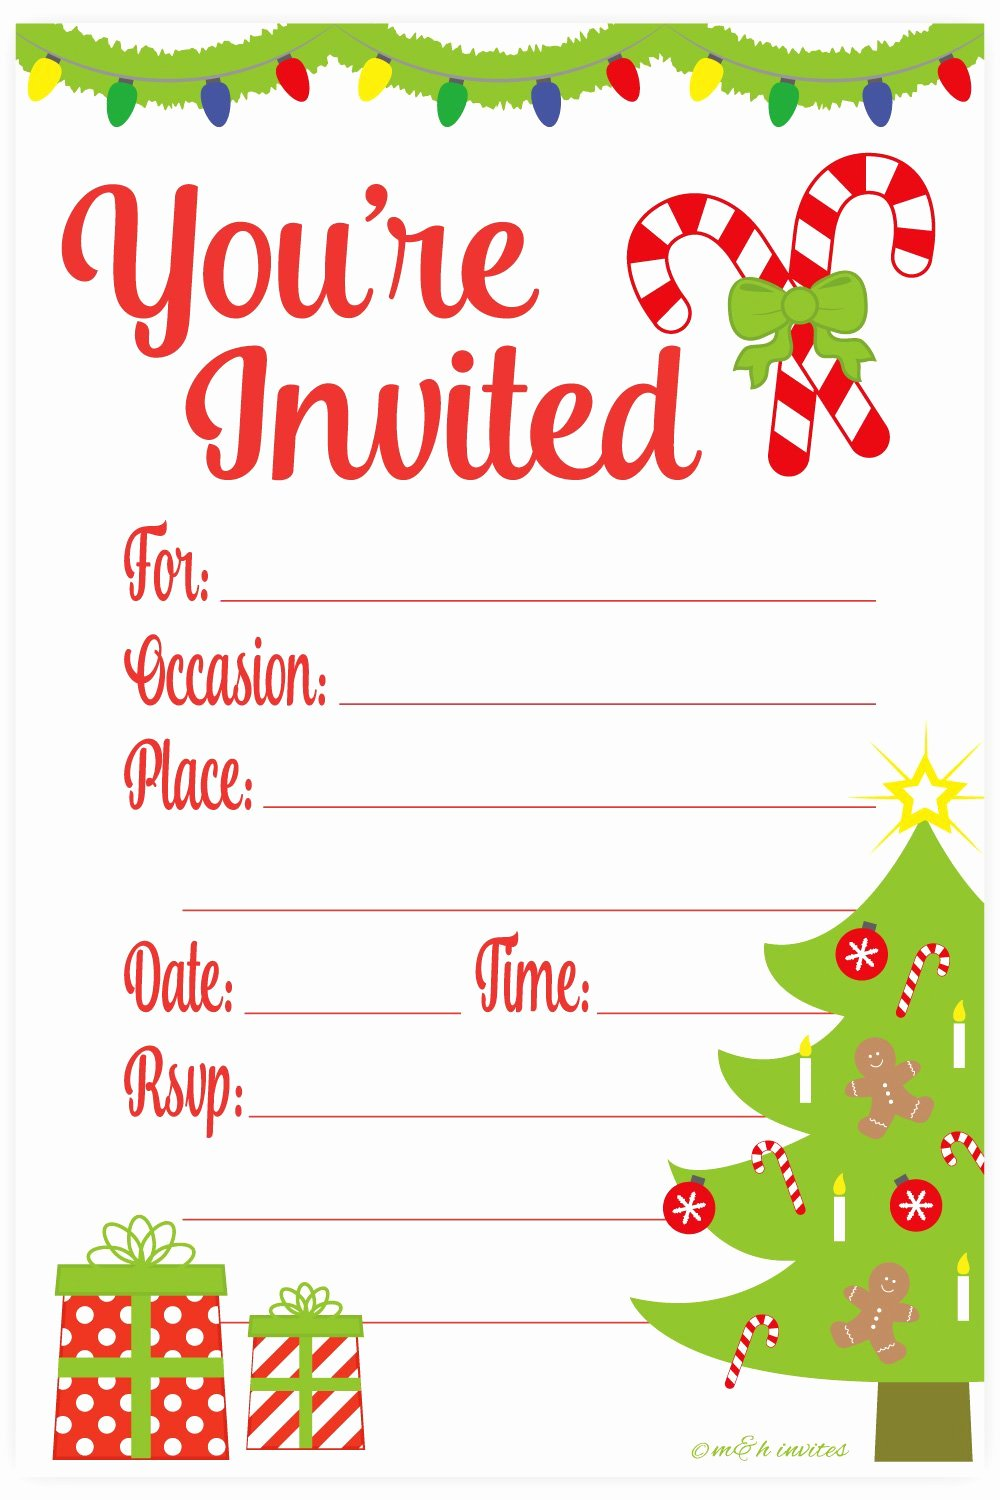 Free Holiday Party Invitation Template Luxury Amazon Snowflake Classic Christmas Invitations Fill